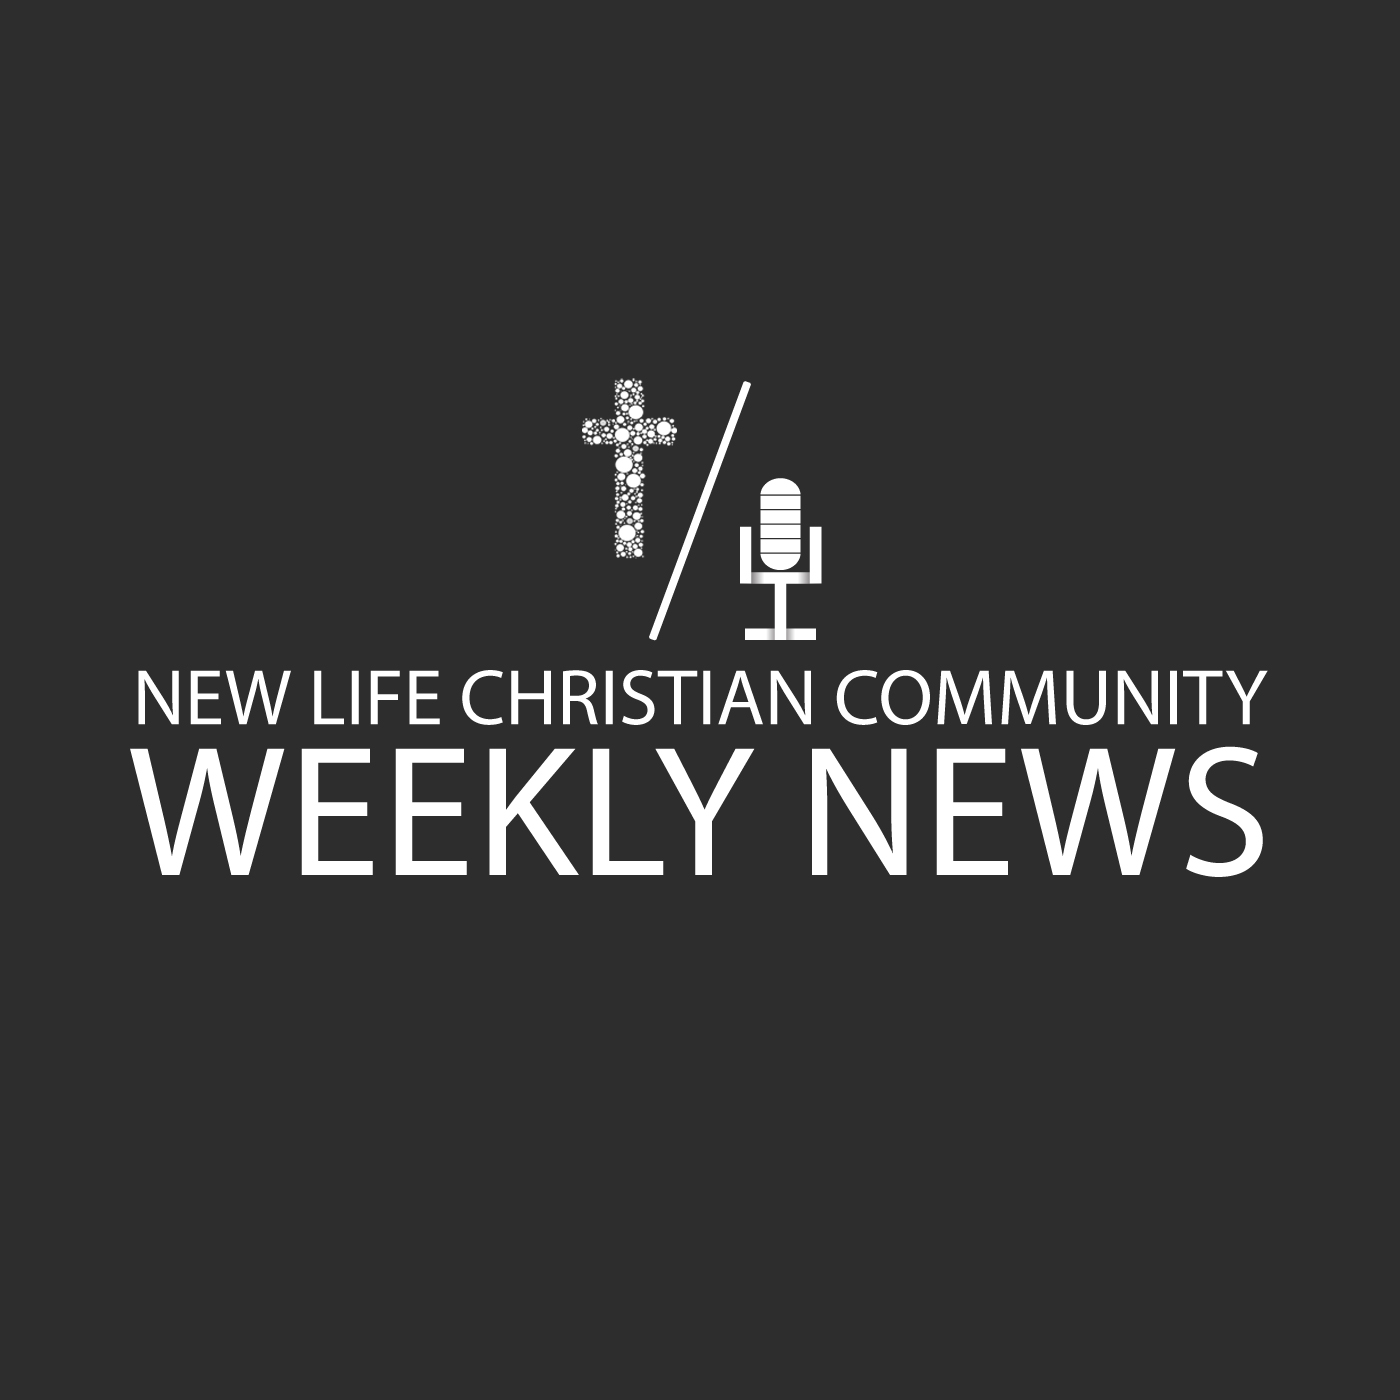 Weekly News & Doctrine Podcast December 20, 2015